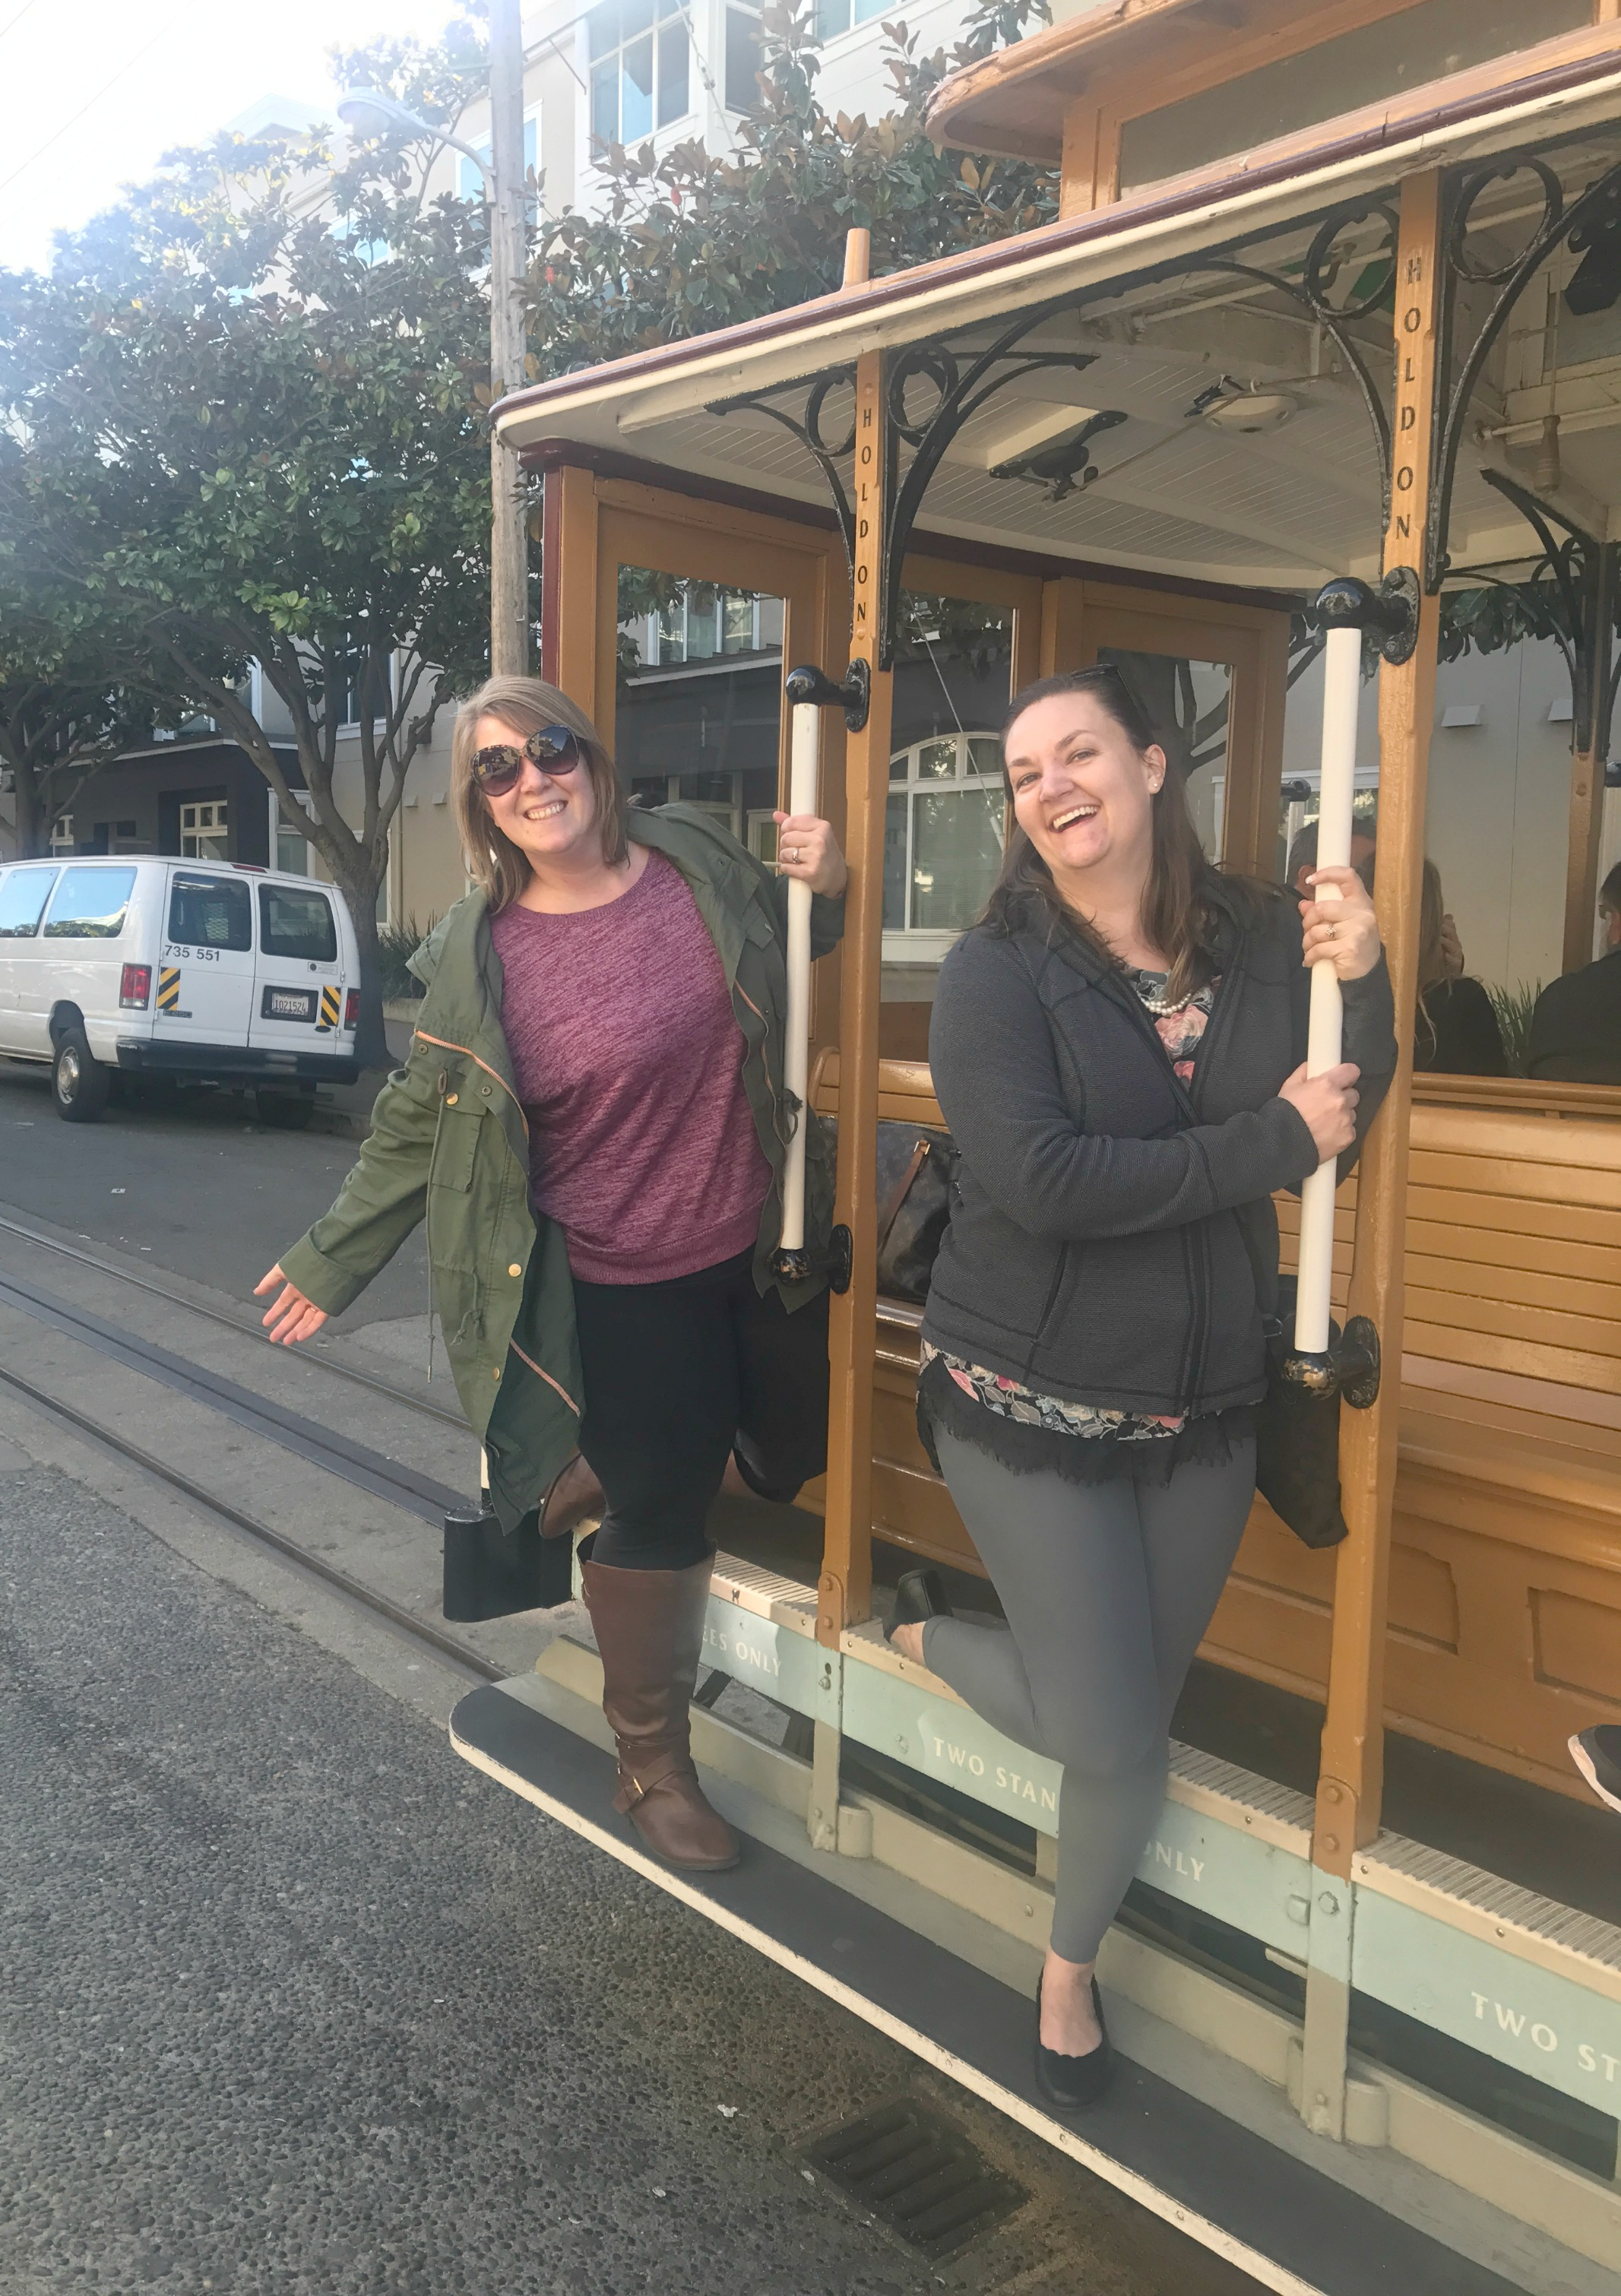 Riding the cable cars in San Francisco, How to ride the cable cars in San Francisco, Explore San Francisco in One Day